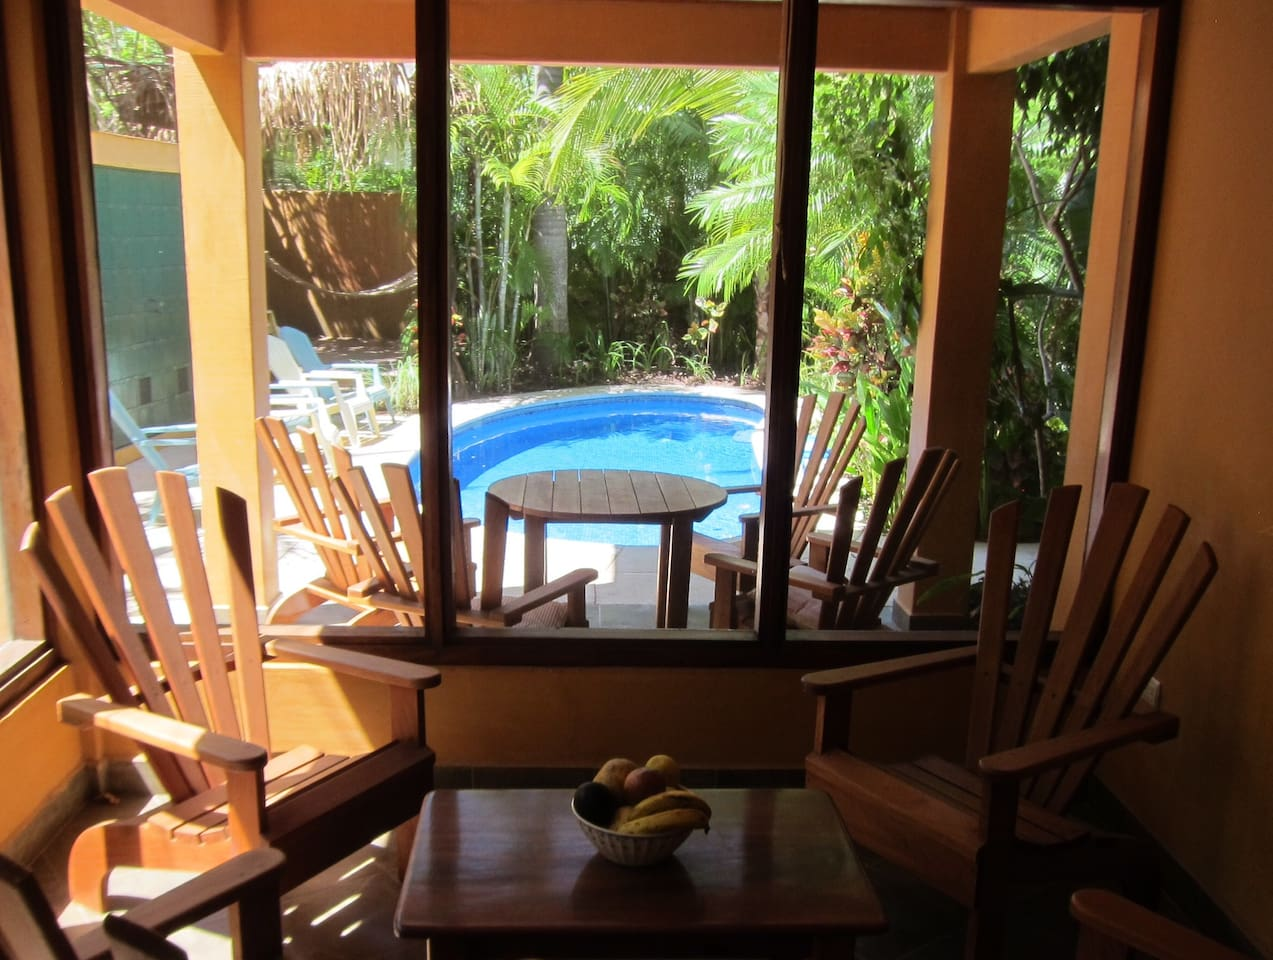 Looking out from the Master bedroom onto a fully screened porch that opens to the pool area